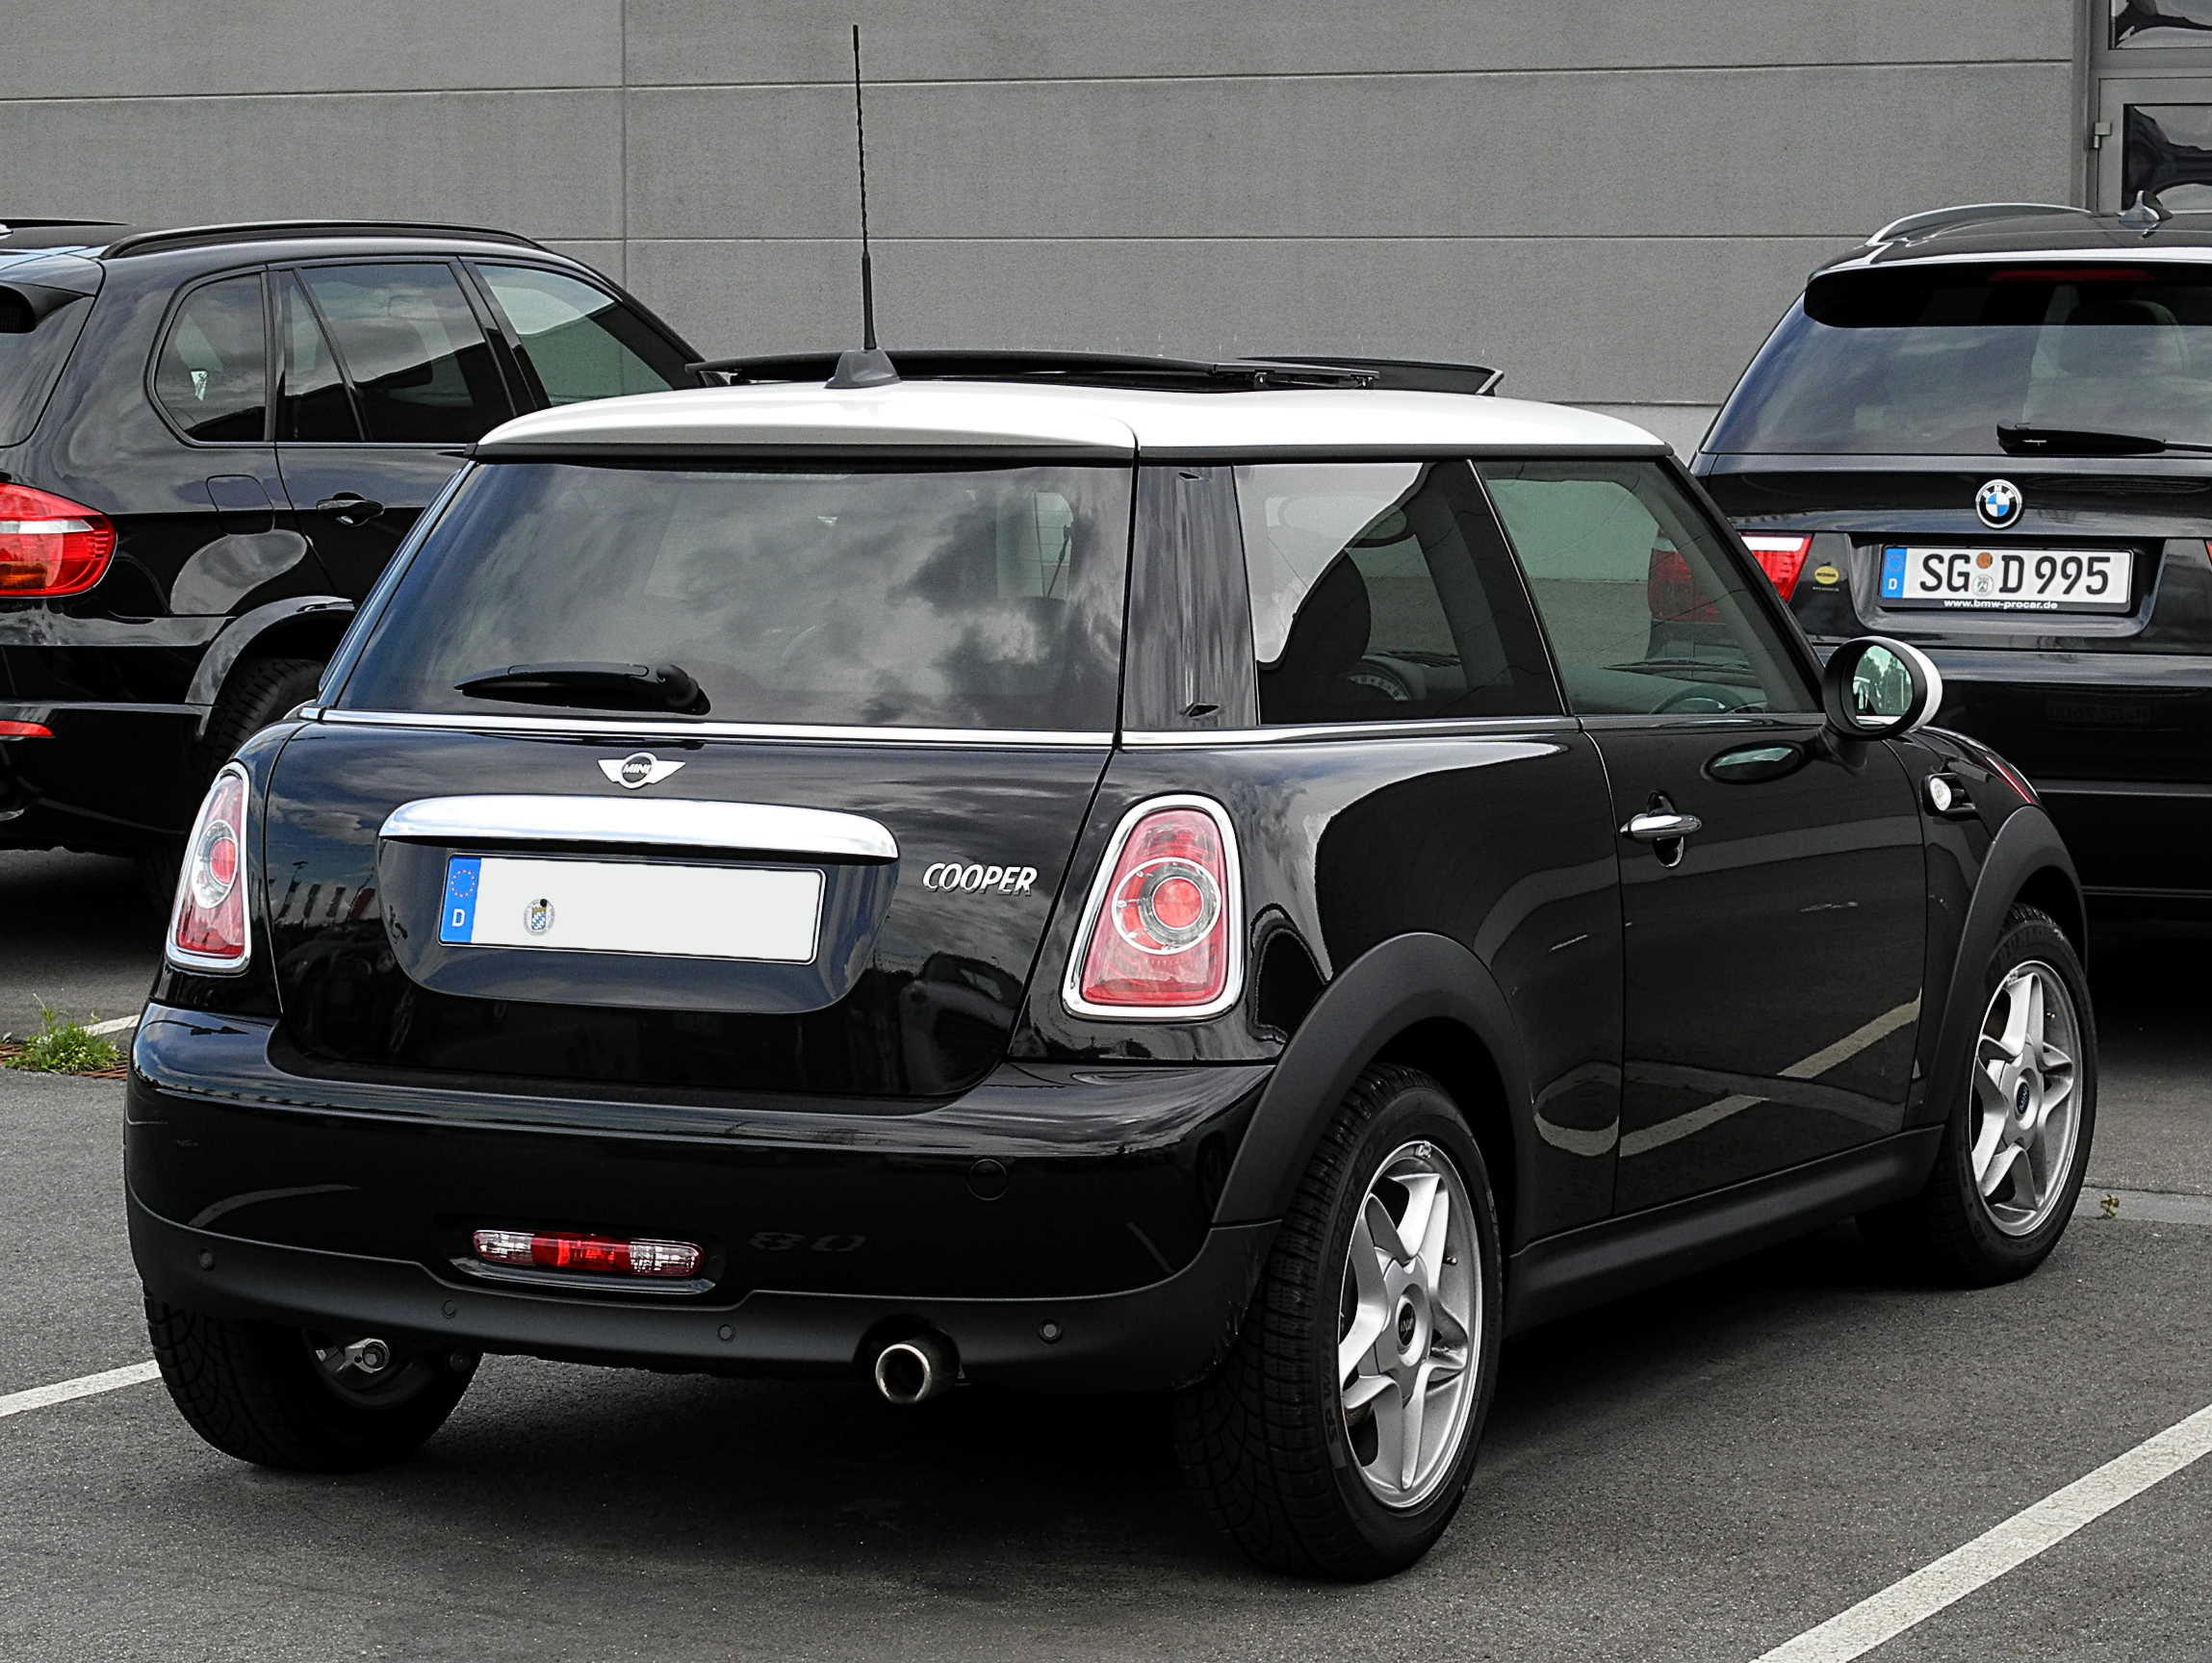 file mini cooper r56 facelift heckansicht 1 17 juli 2011 d wikimedia. Black Bedroom Furniture Sets. Home Design Ideas